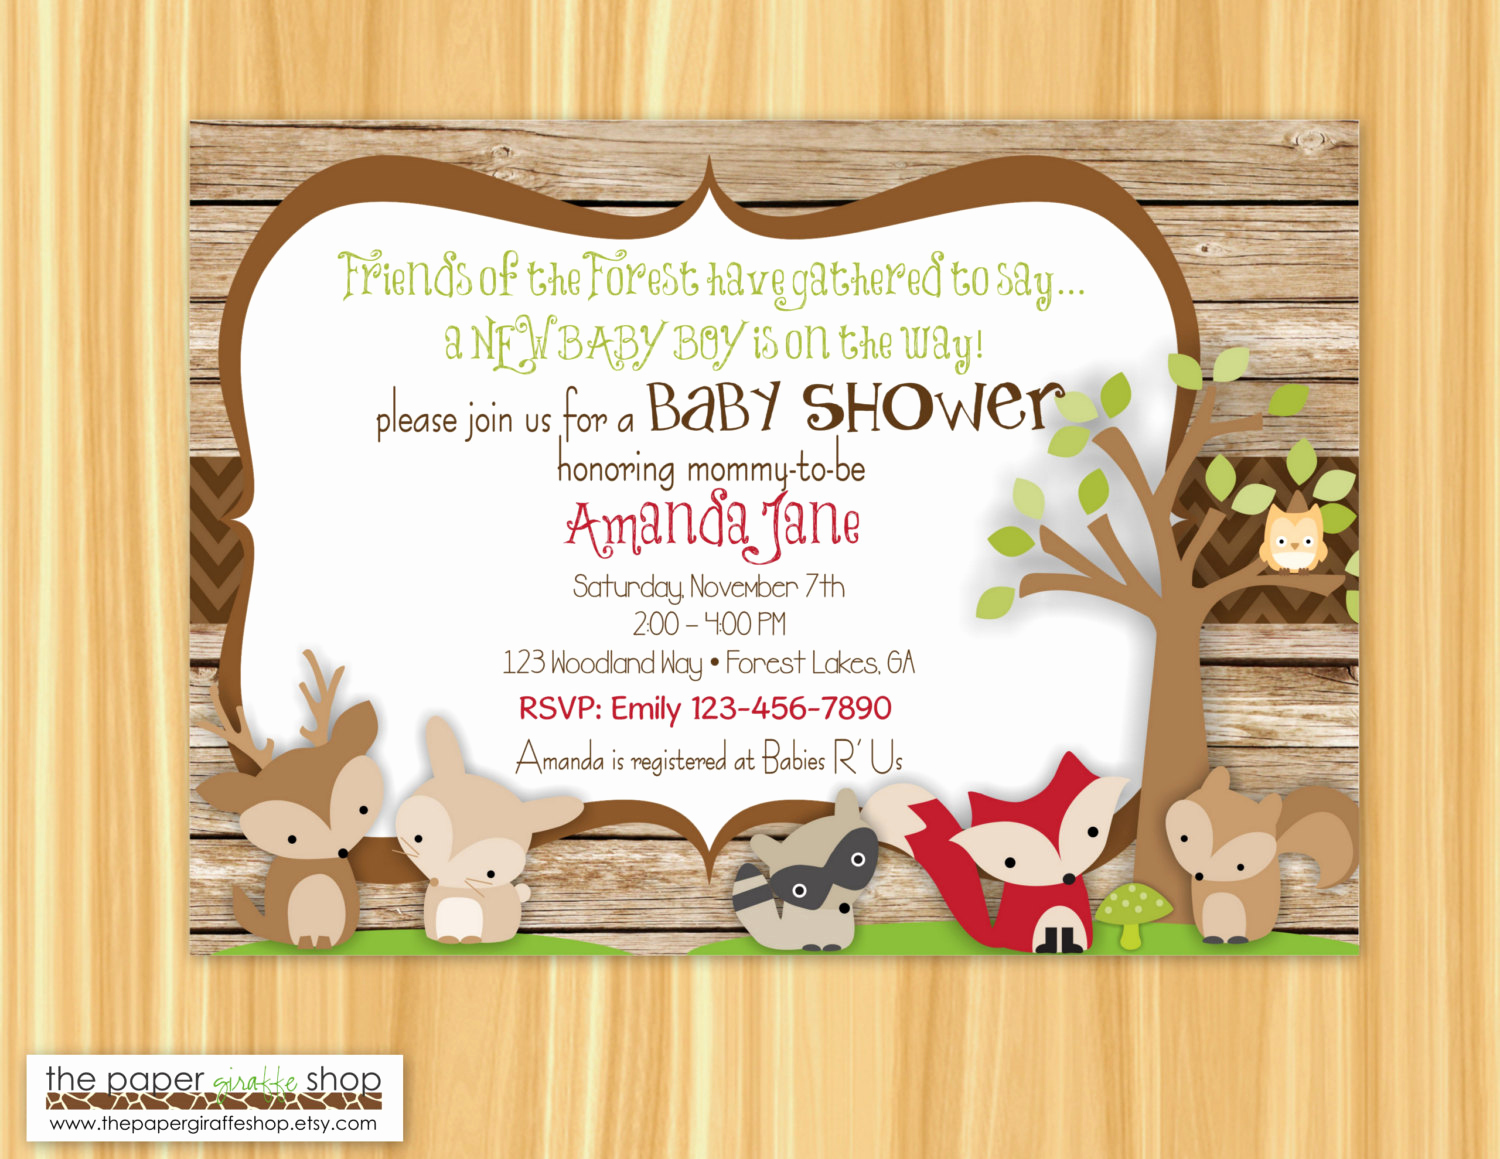 Woodland Baby Shower Invitation Unique Woodland Creatures Baby Shower Invitation forest Friends